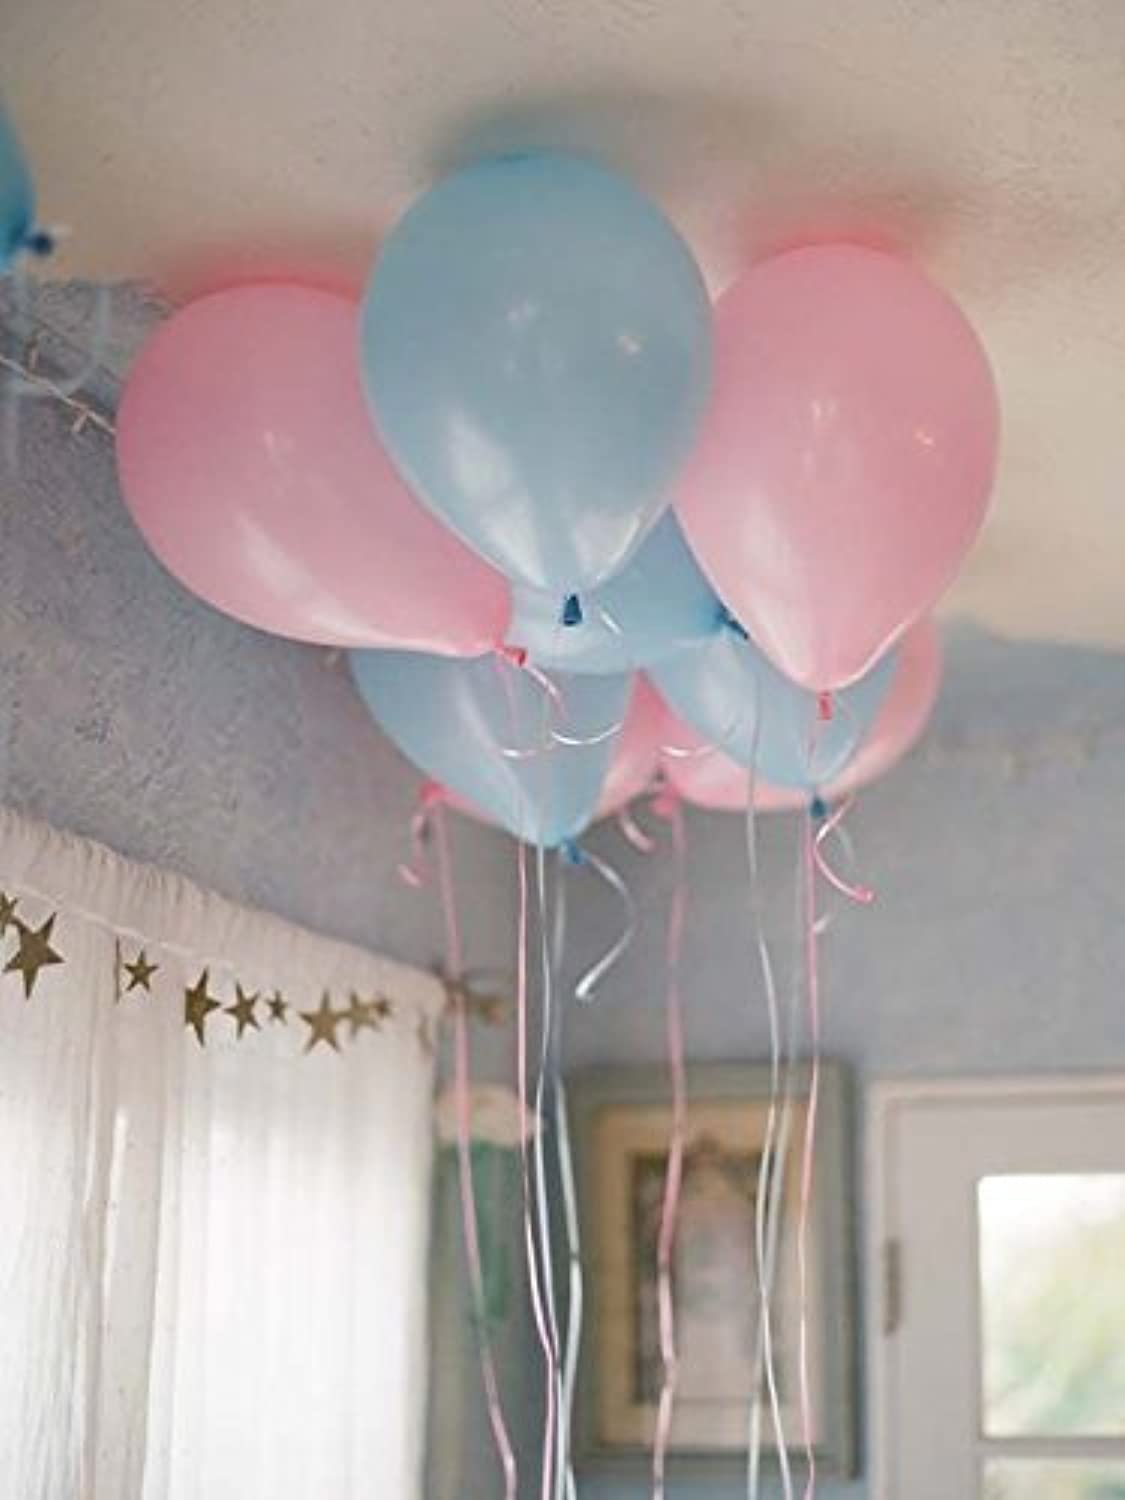 12  3.2 Helium Quality Matte Latex Balloons  Light Pink and Light bluee. Perfect for Gender Reveal Baby Shower Party Decoration, 1st Birthday Boys &Girls & Twins and Other Occasion 100 Count.